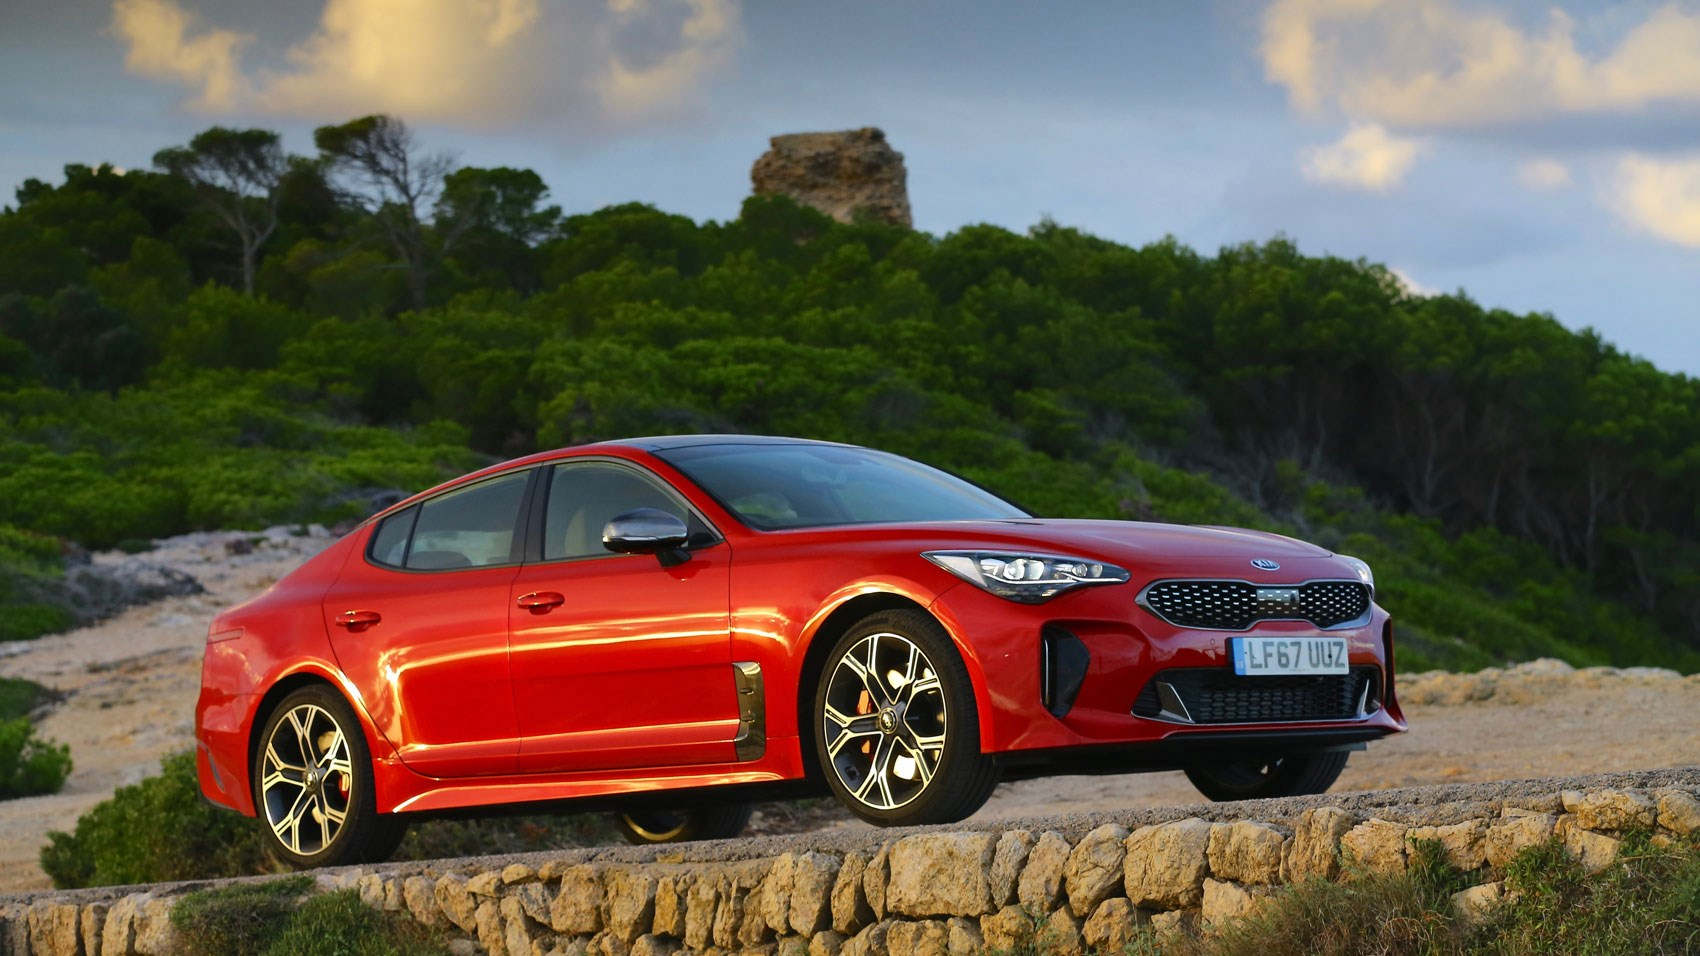 kia stinger gt 2018 review well worth a look in car. Black Bedroom Furniture Sets. Home Design Ideas